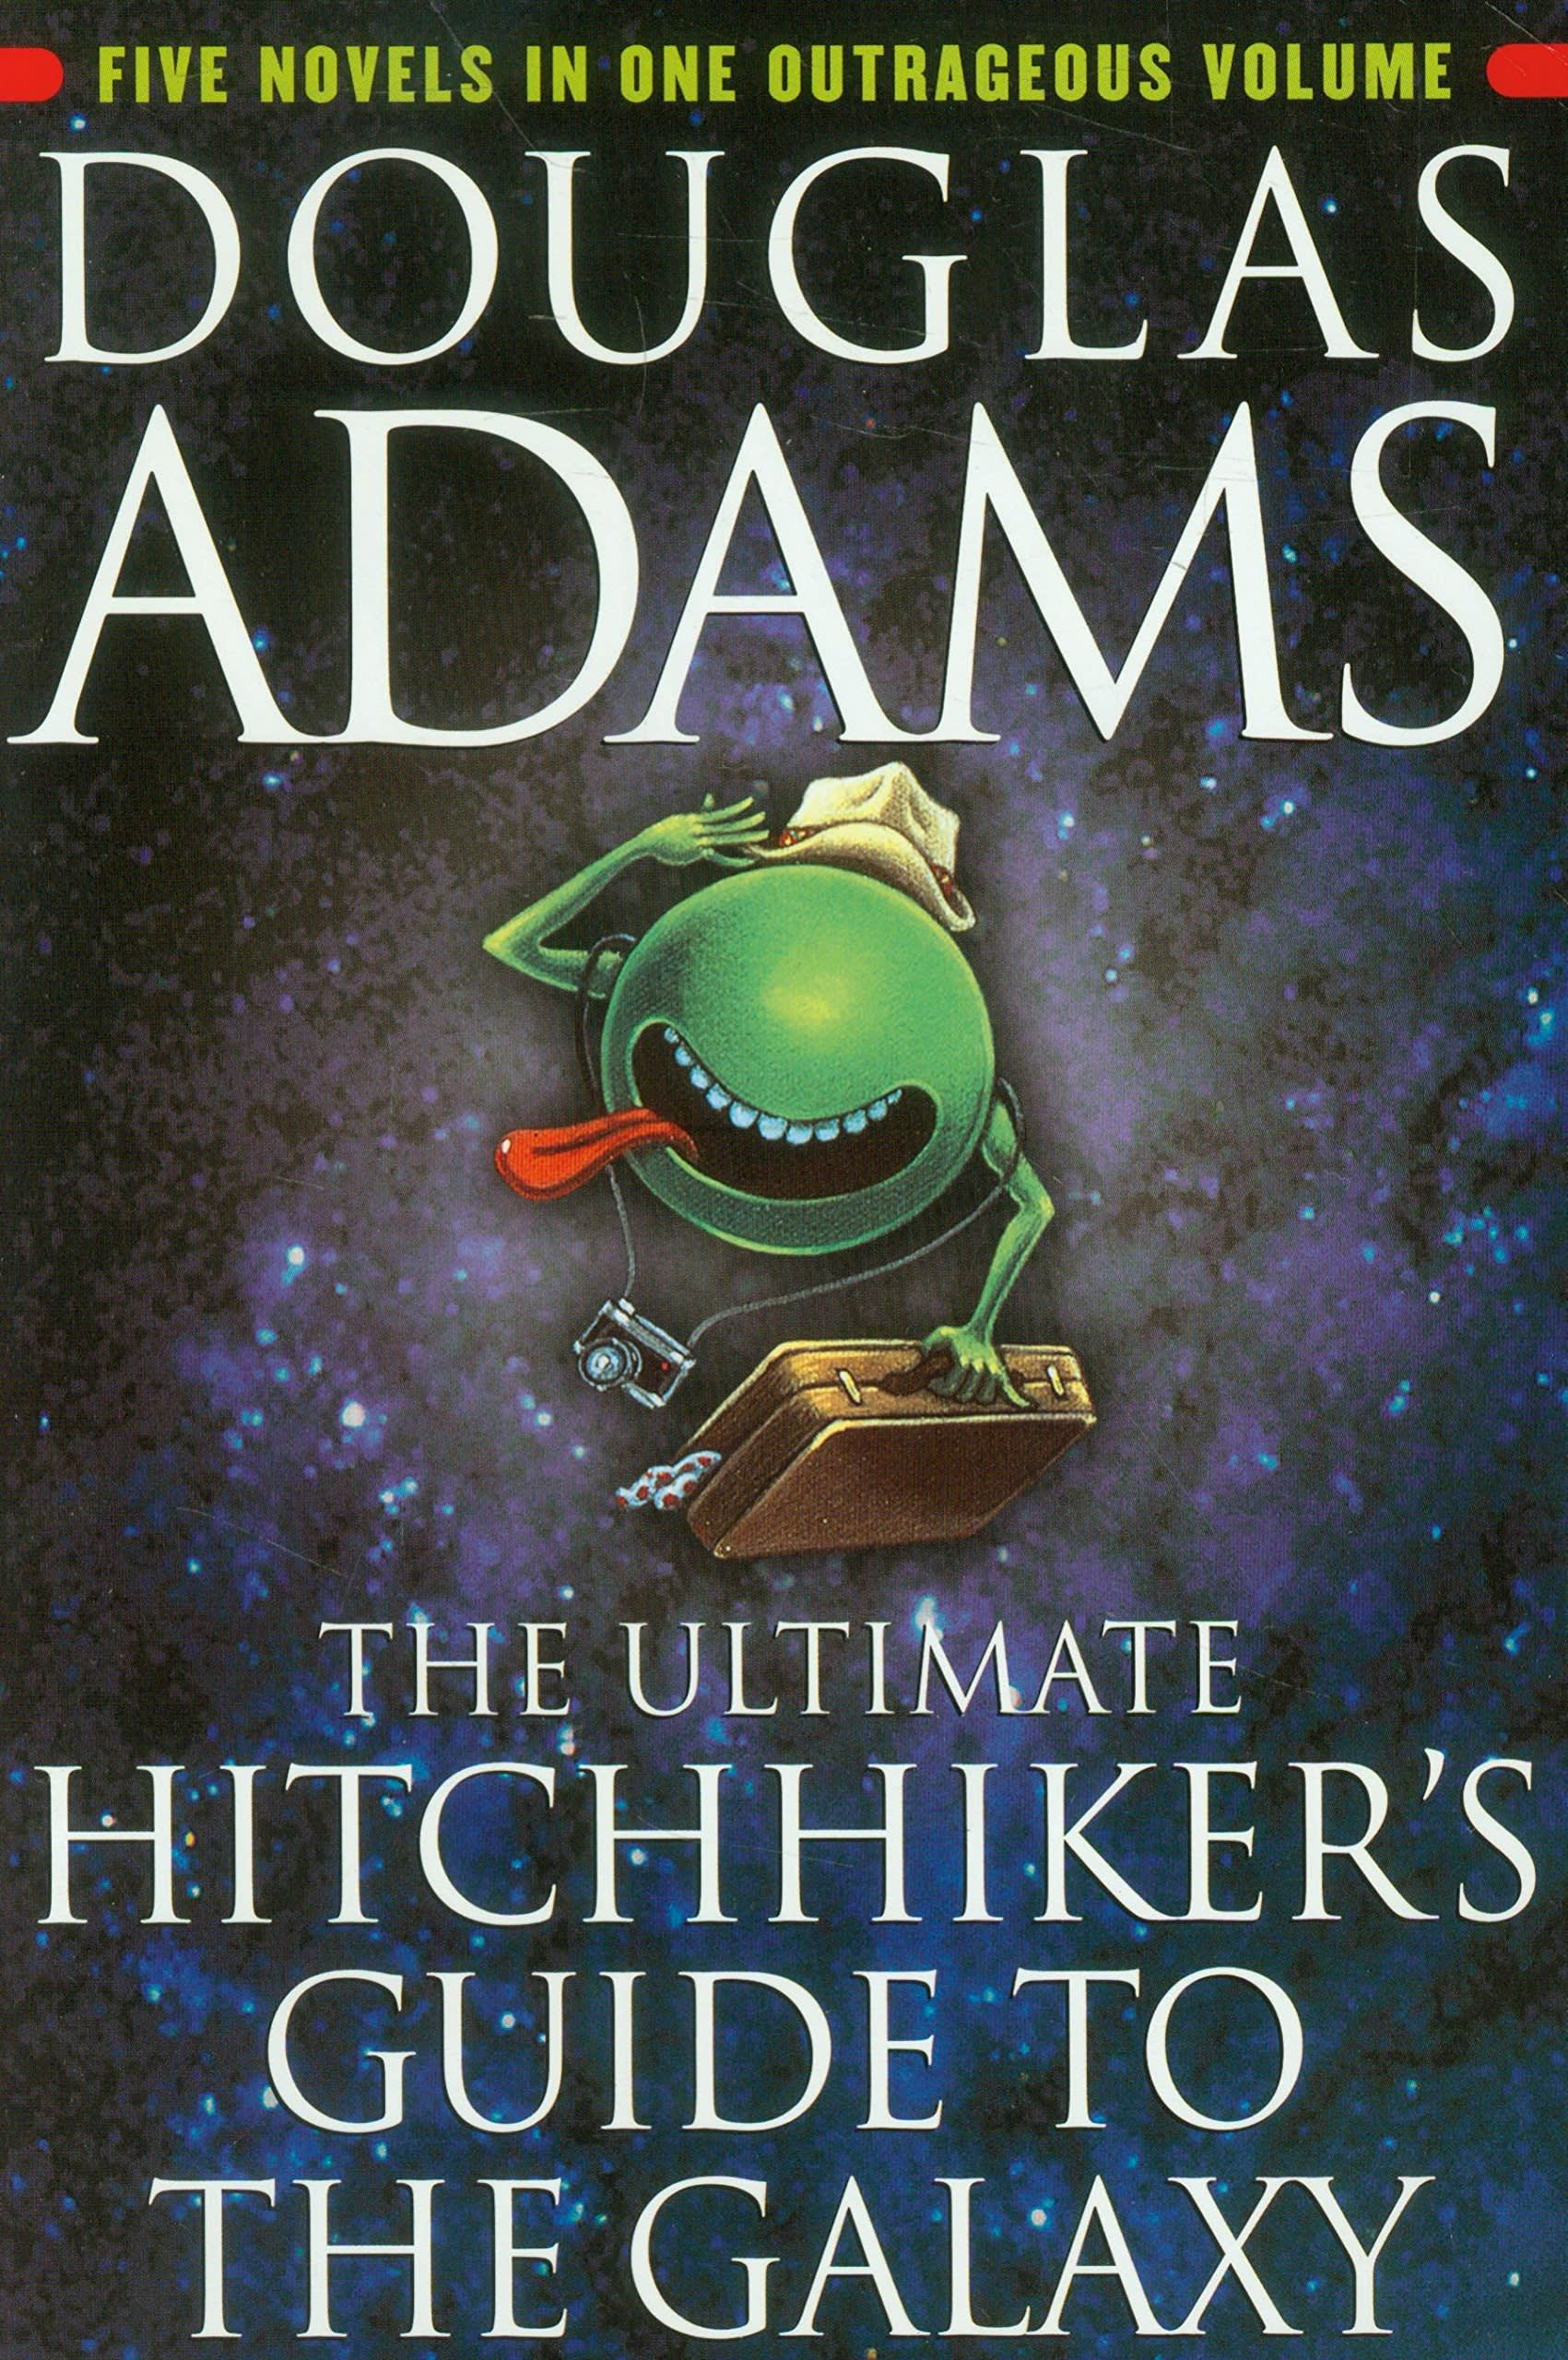 Douglas Adams Hitchikers Guide cover